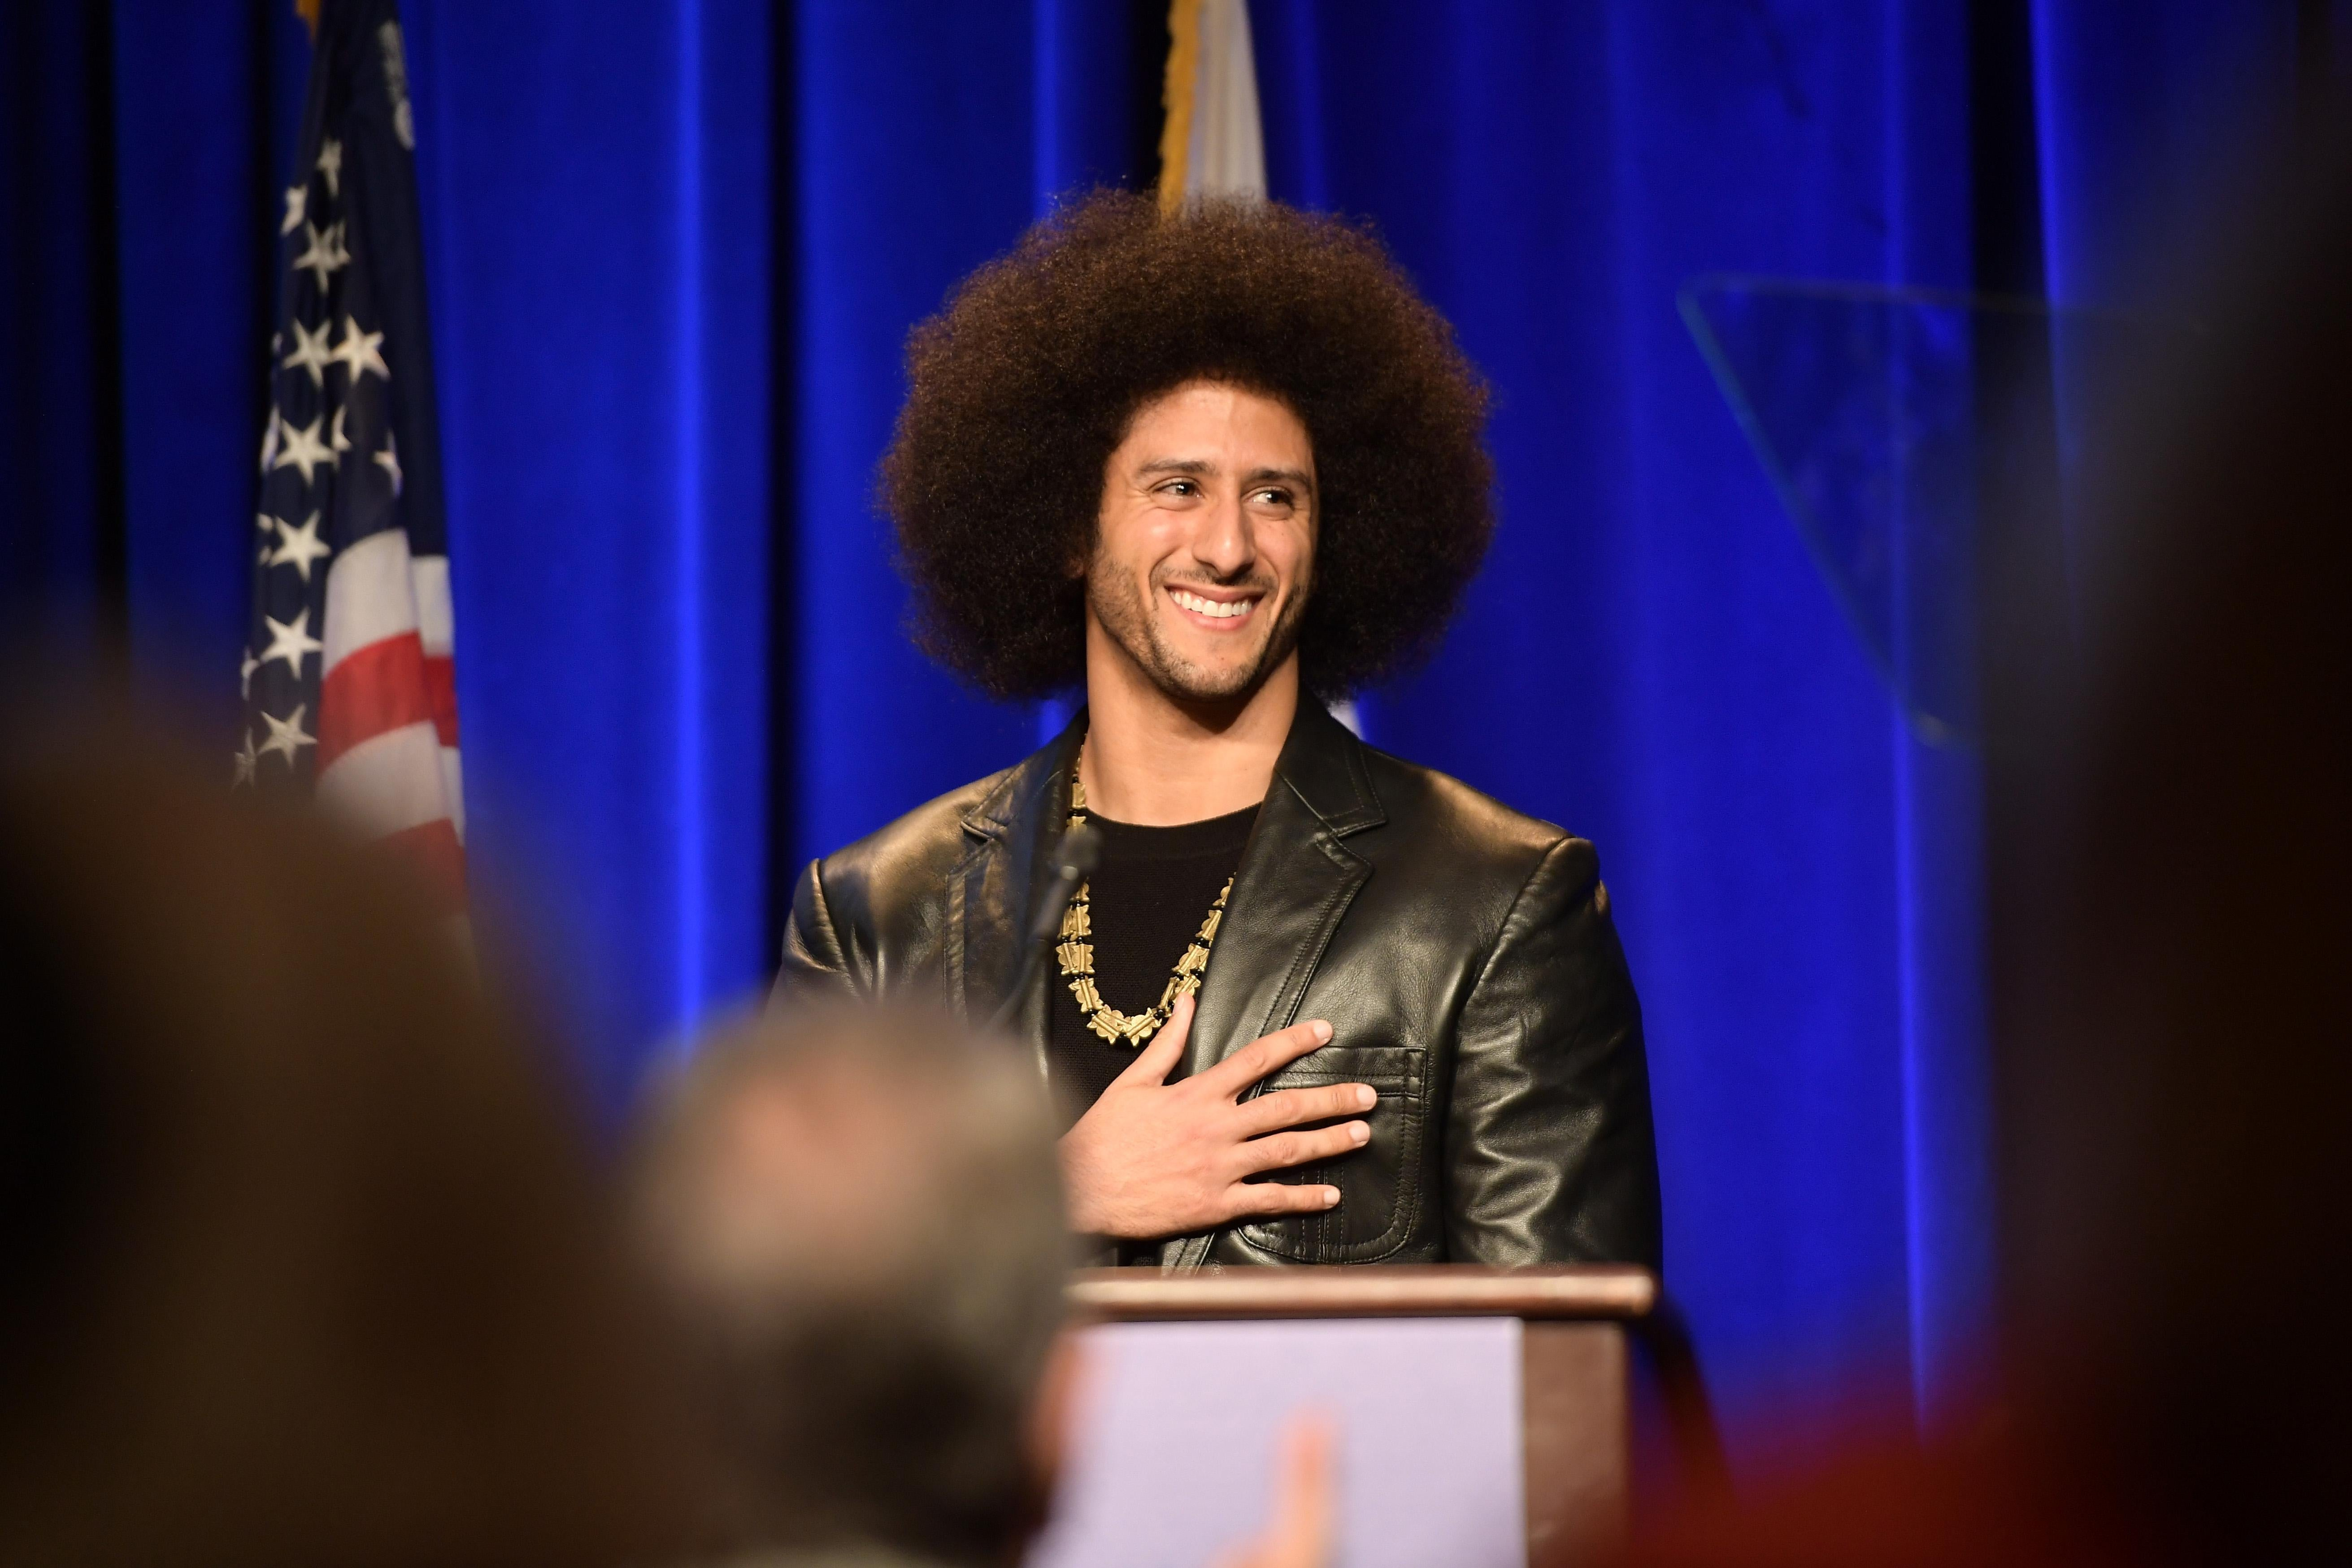 Audience applauds Colin Kaepernick, standing onstage behind a podium.